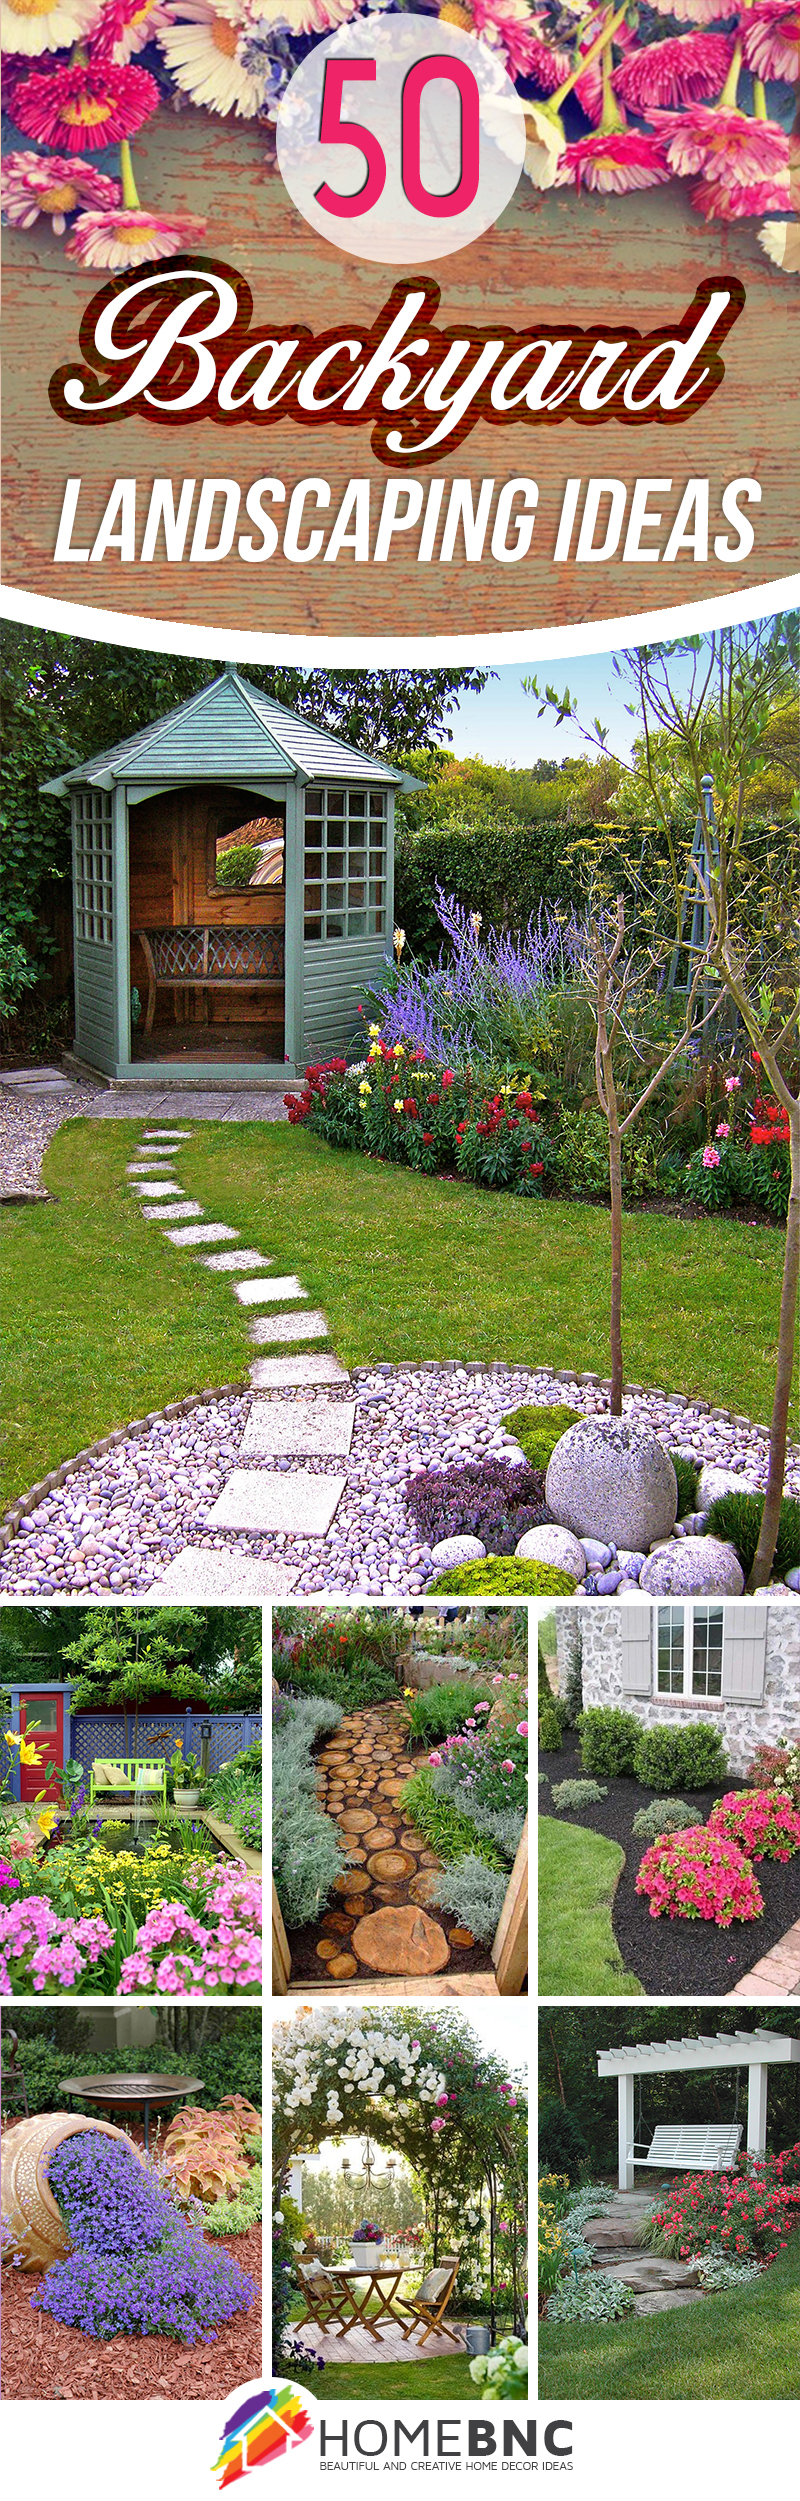 50 Best Backyard Landscaping Ideas And Designs In 2019 for 15 Clever Ways How to Craft Garden Ideas Backyard